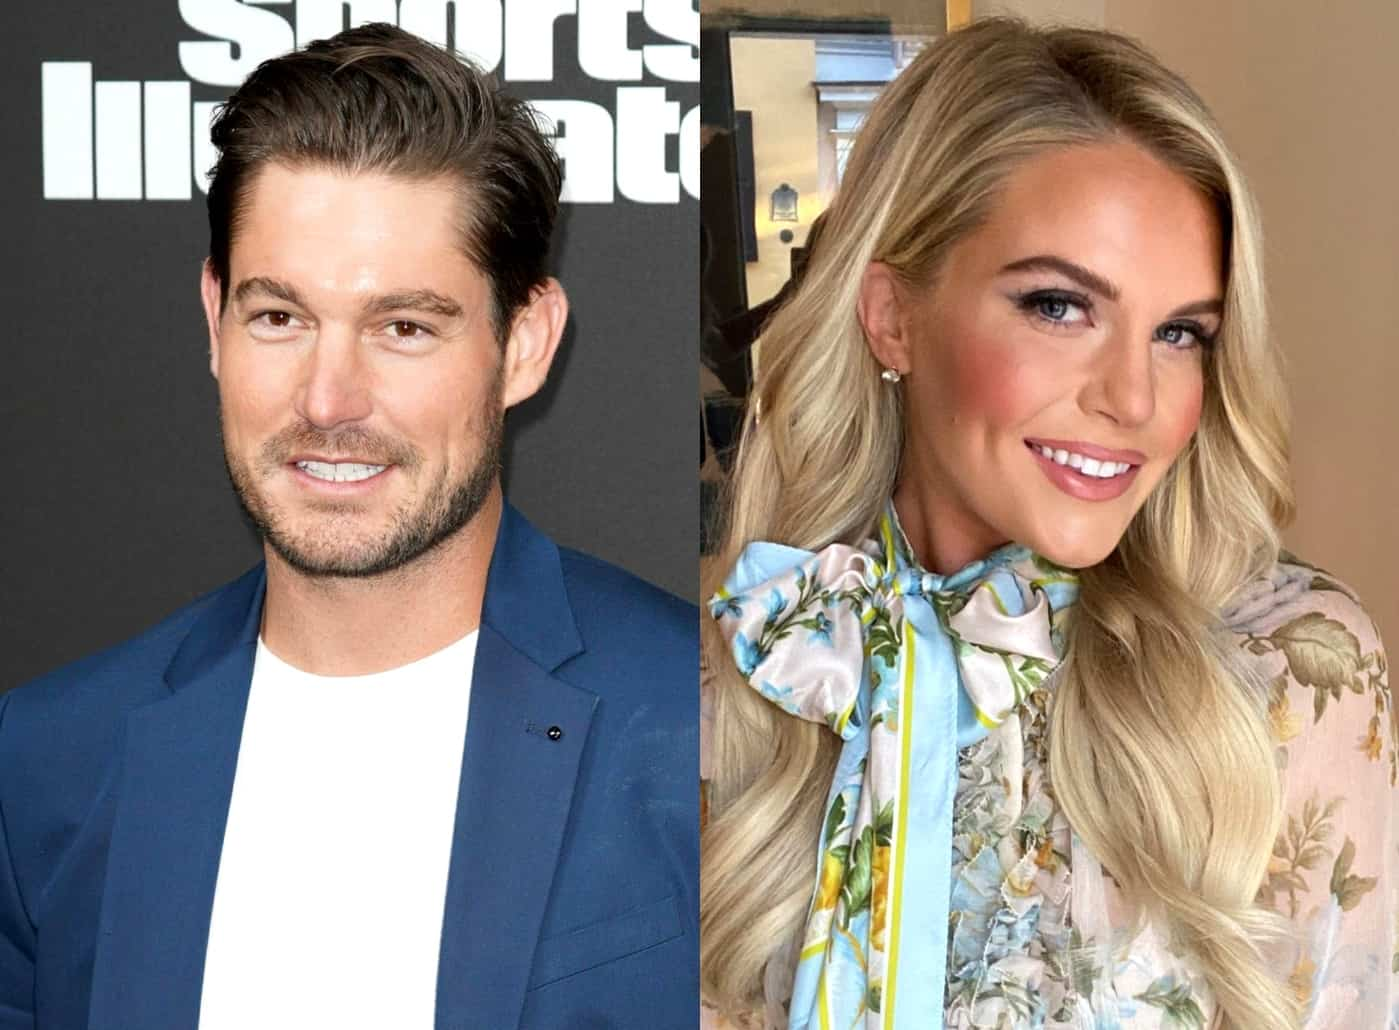 """Craig Conover Accuses Madison LeCroy of Sleeping With a Married Ex-MLB Player, He Calls Southern Charm Costar """"Trash"""" as Austen Claims She Bragged About Alleged Affair"""